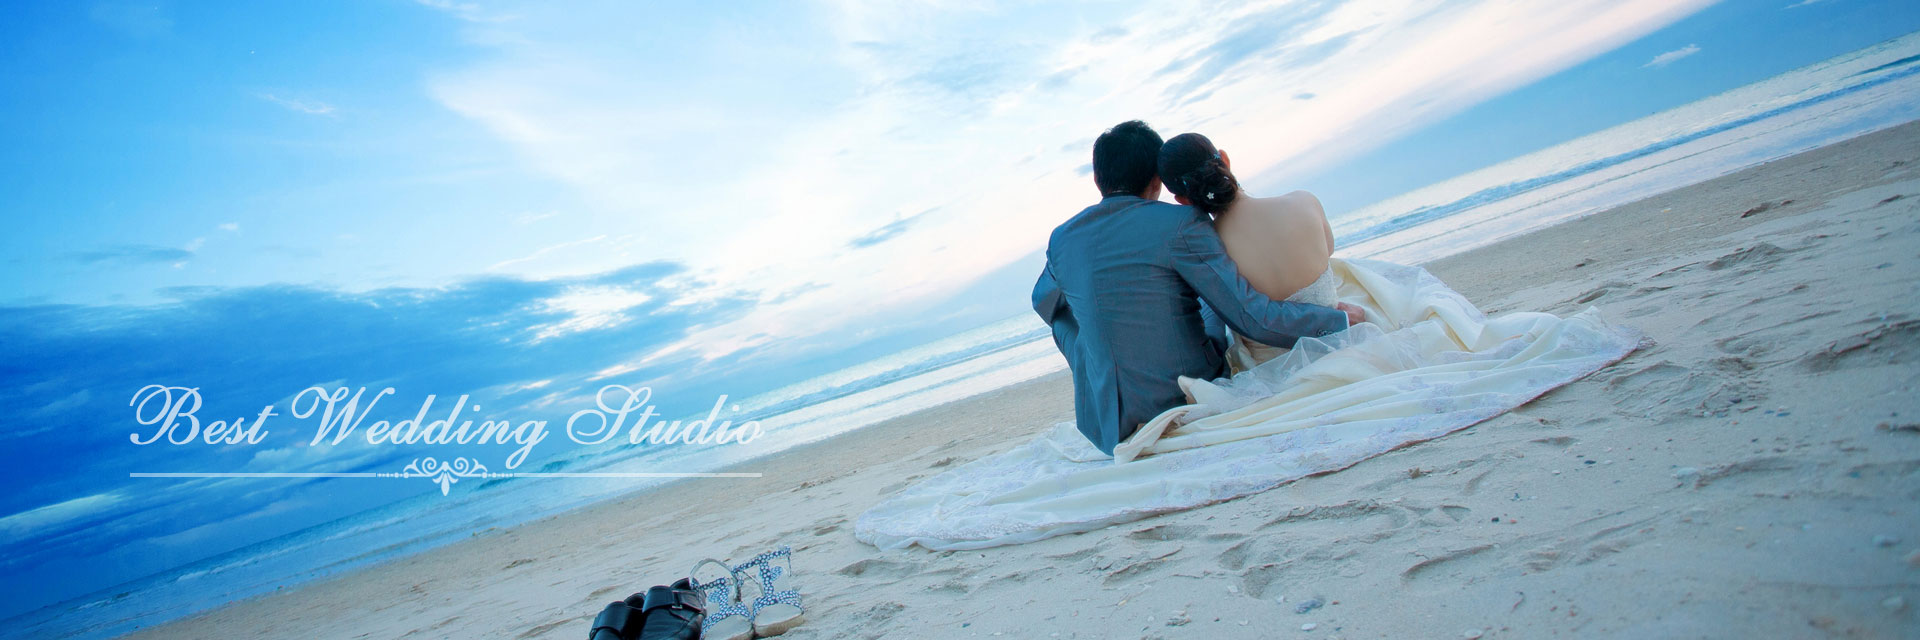 bestweddingstudio07